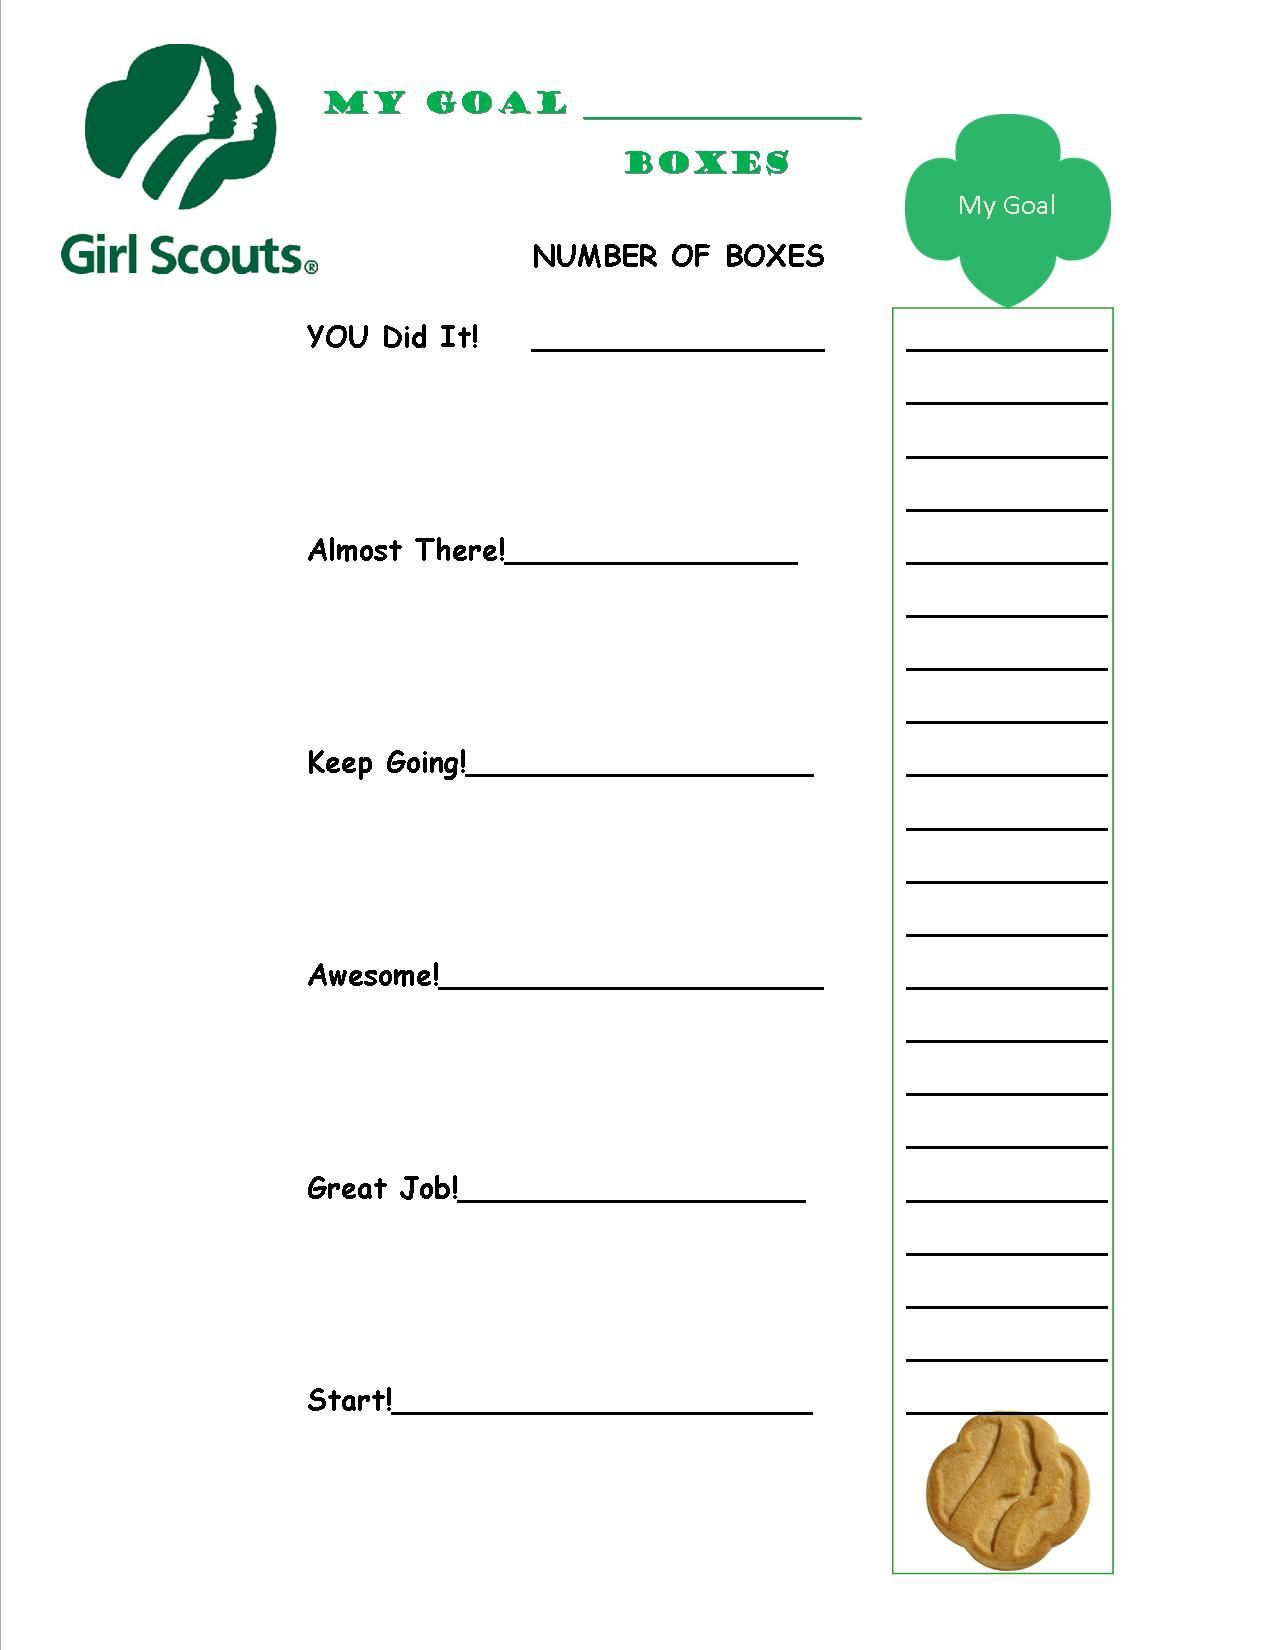 Girl scout cookie goal sheet girl scouts pinterest for Girl scout order form template